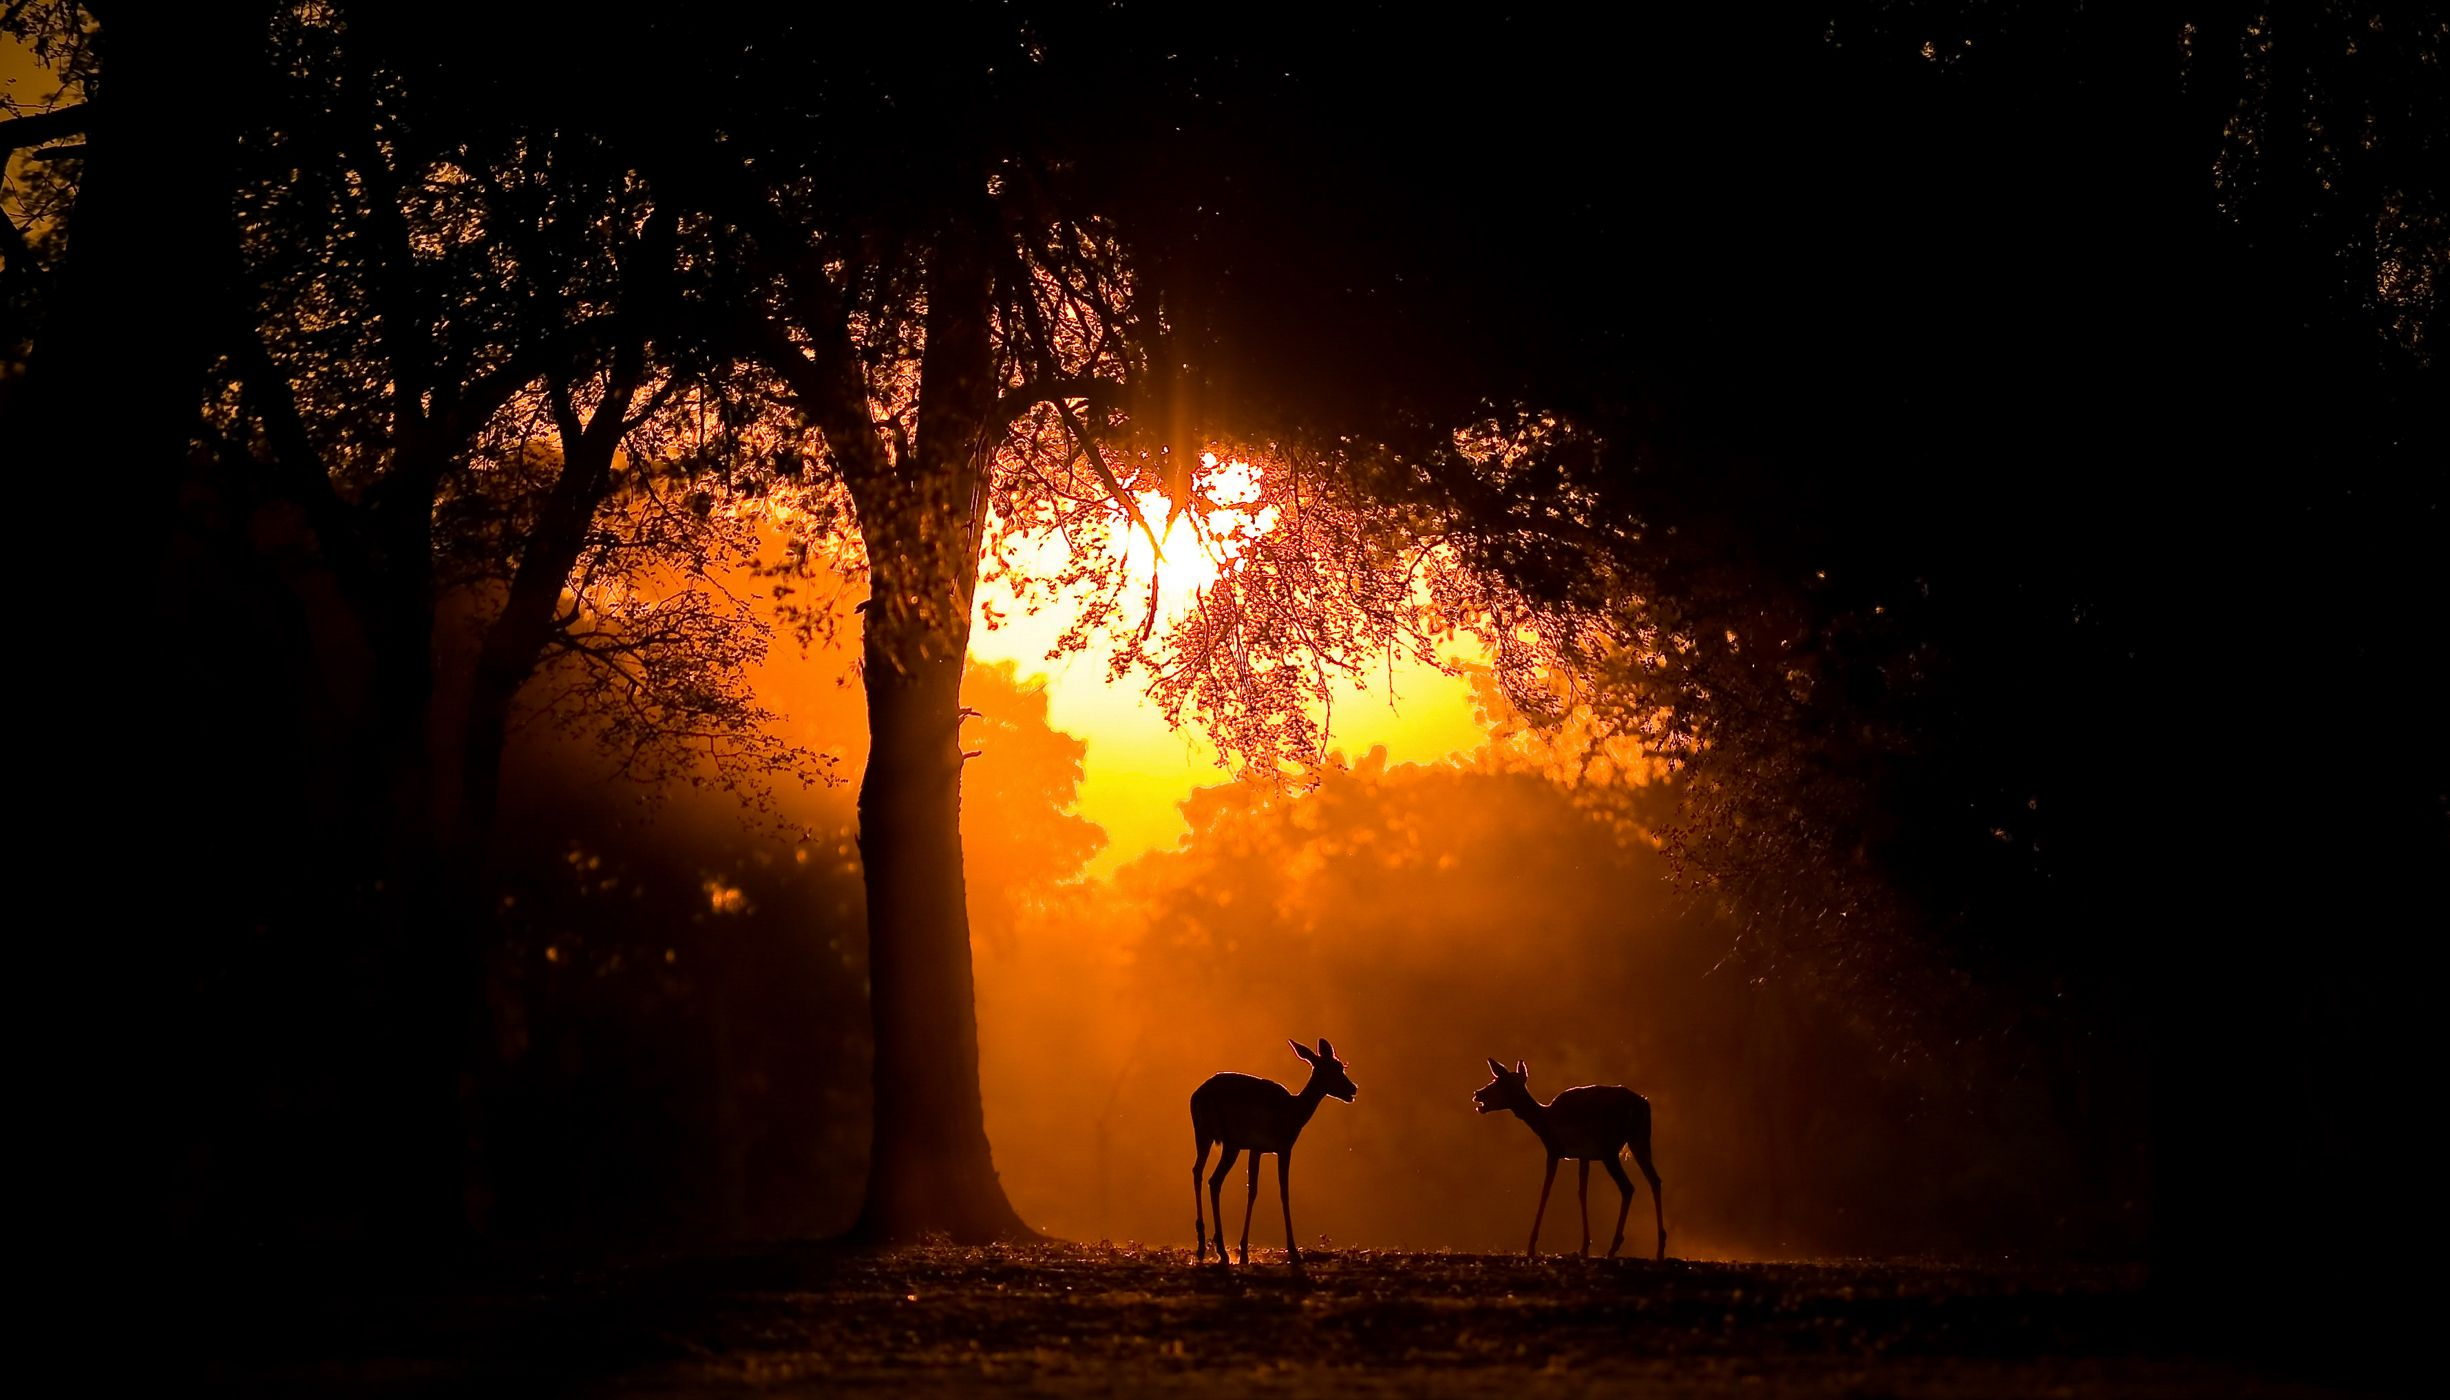 Impala in a clearing at sunset